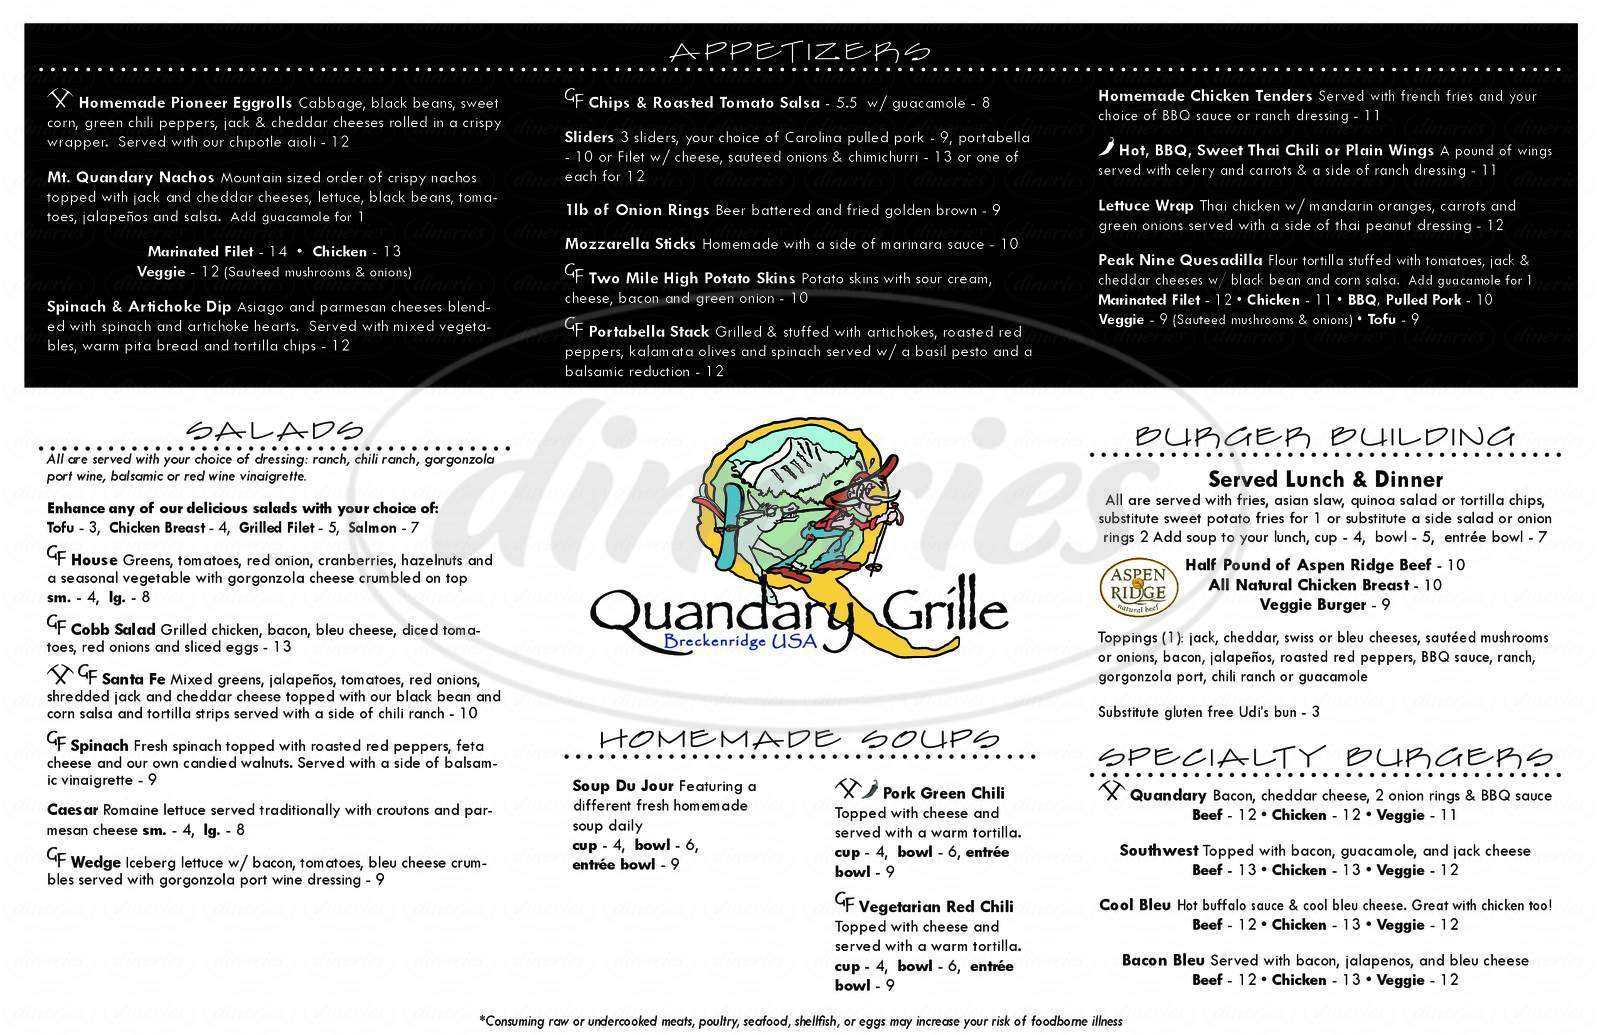 menu for Quandary Grille